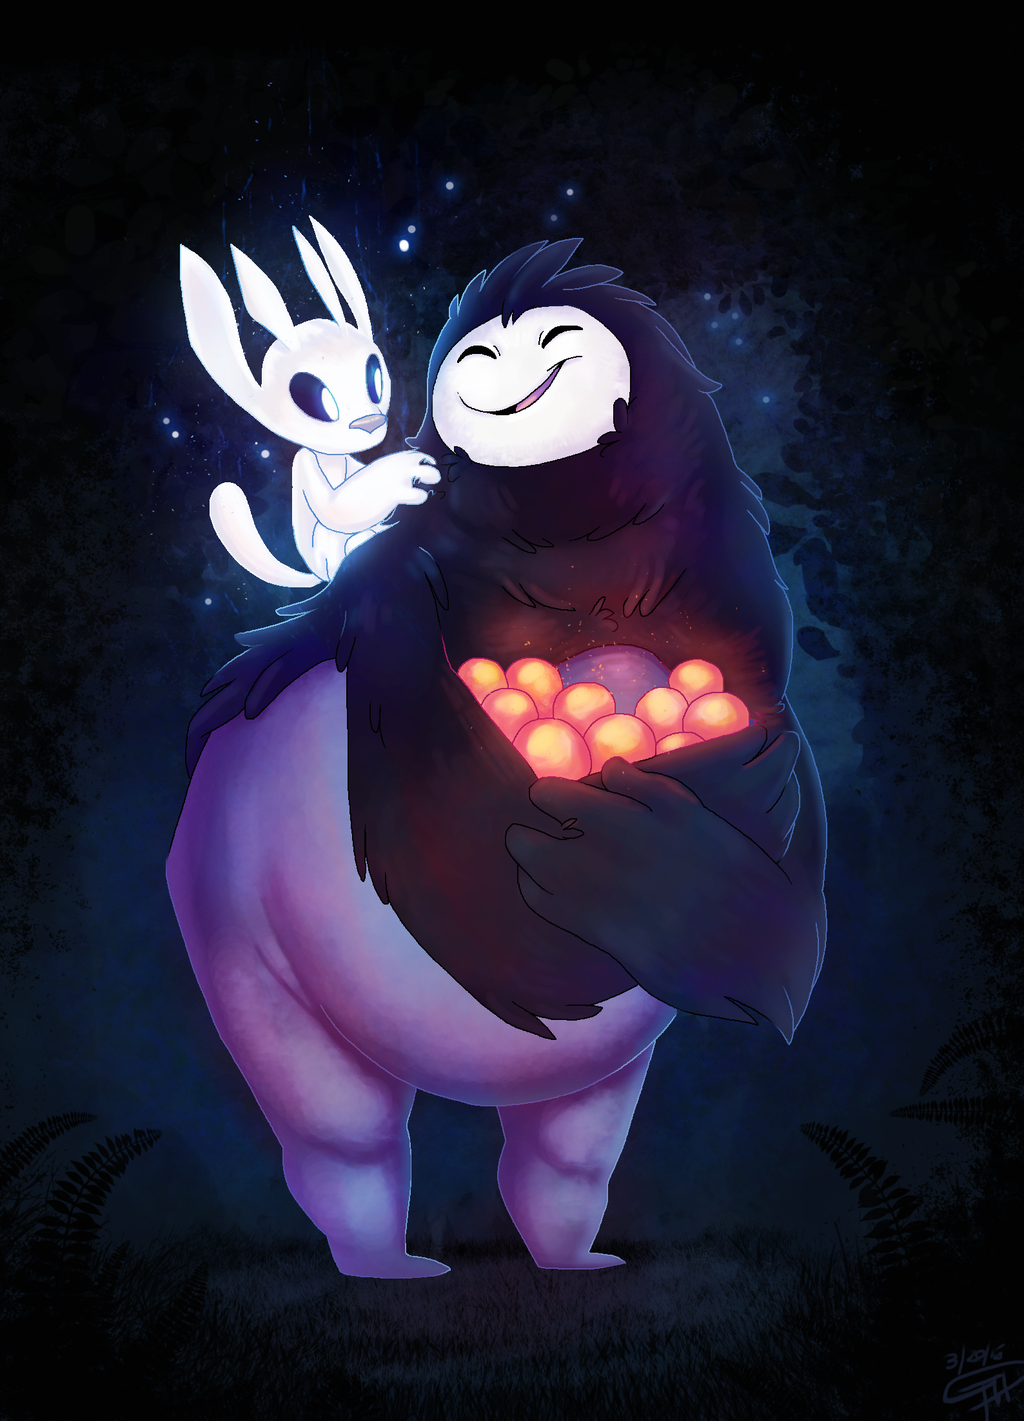 Pin By Lizzzzzie On Ori And The Blind Forest Pinterest Blinds